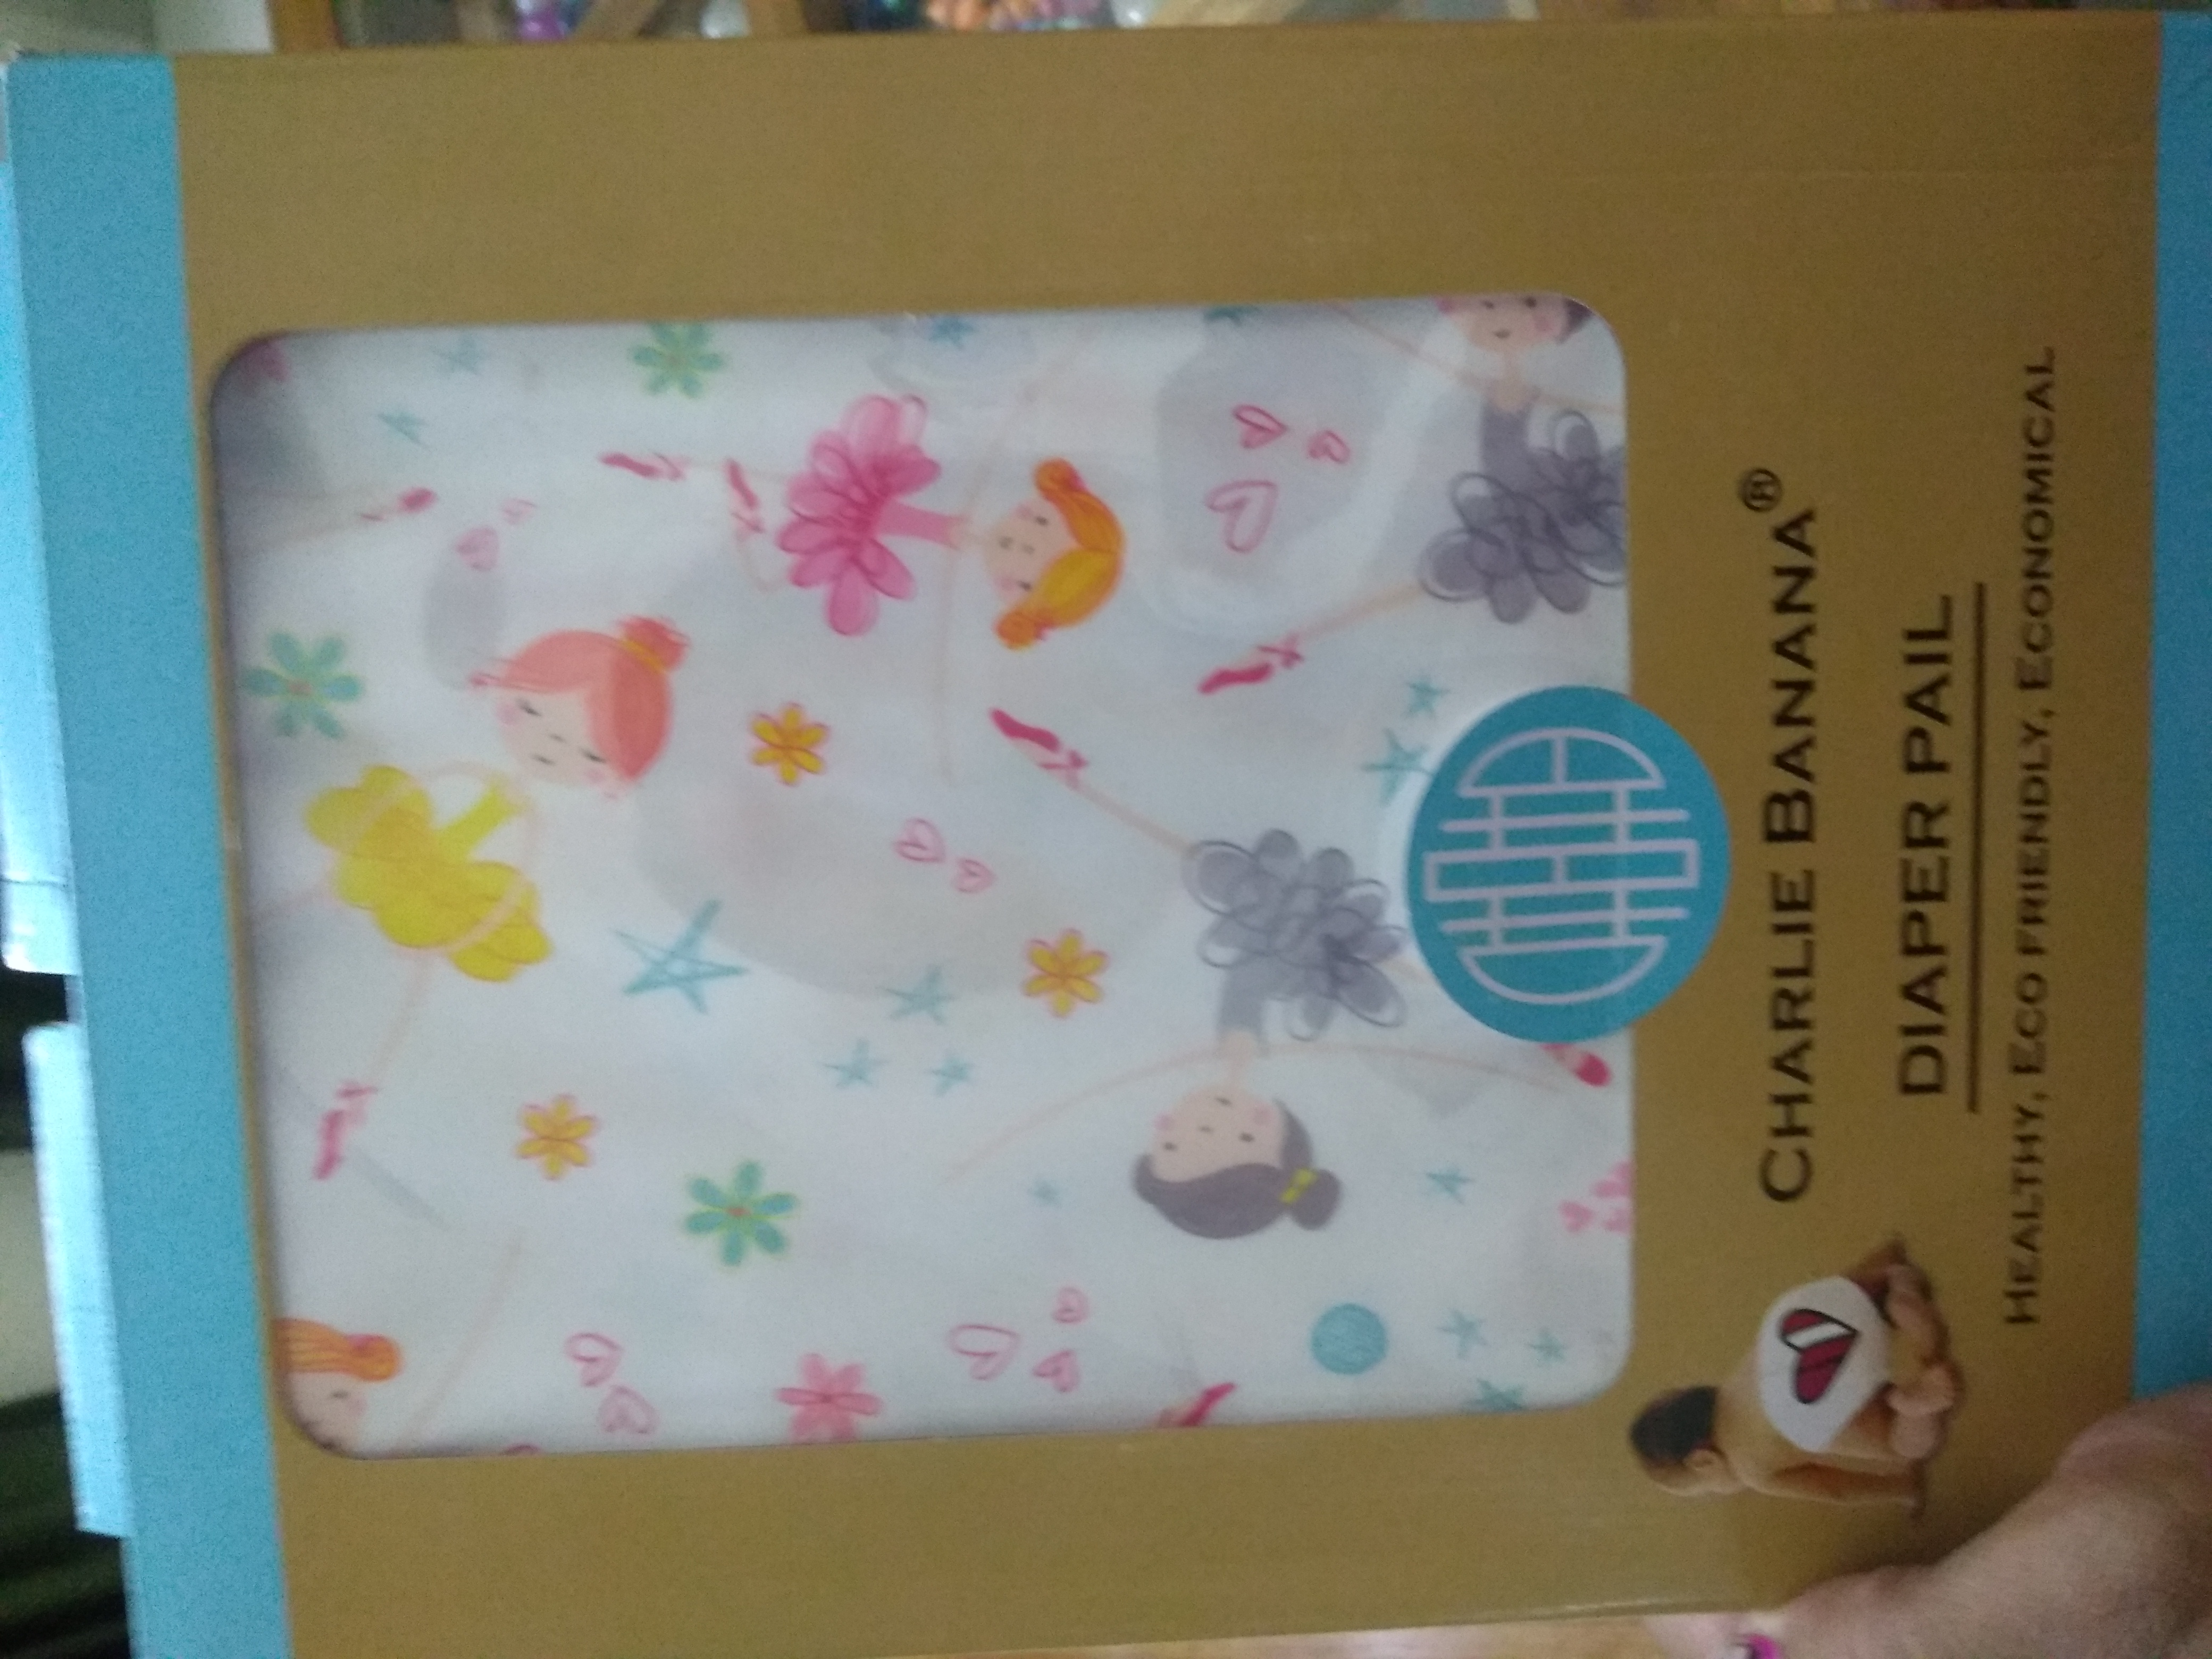 Charlie Banana Diaper Laundry Bag-Essential product for new parents-By supriyaraghav